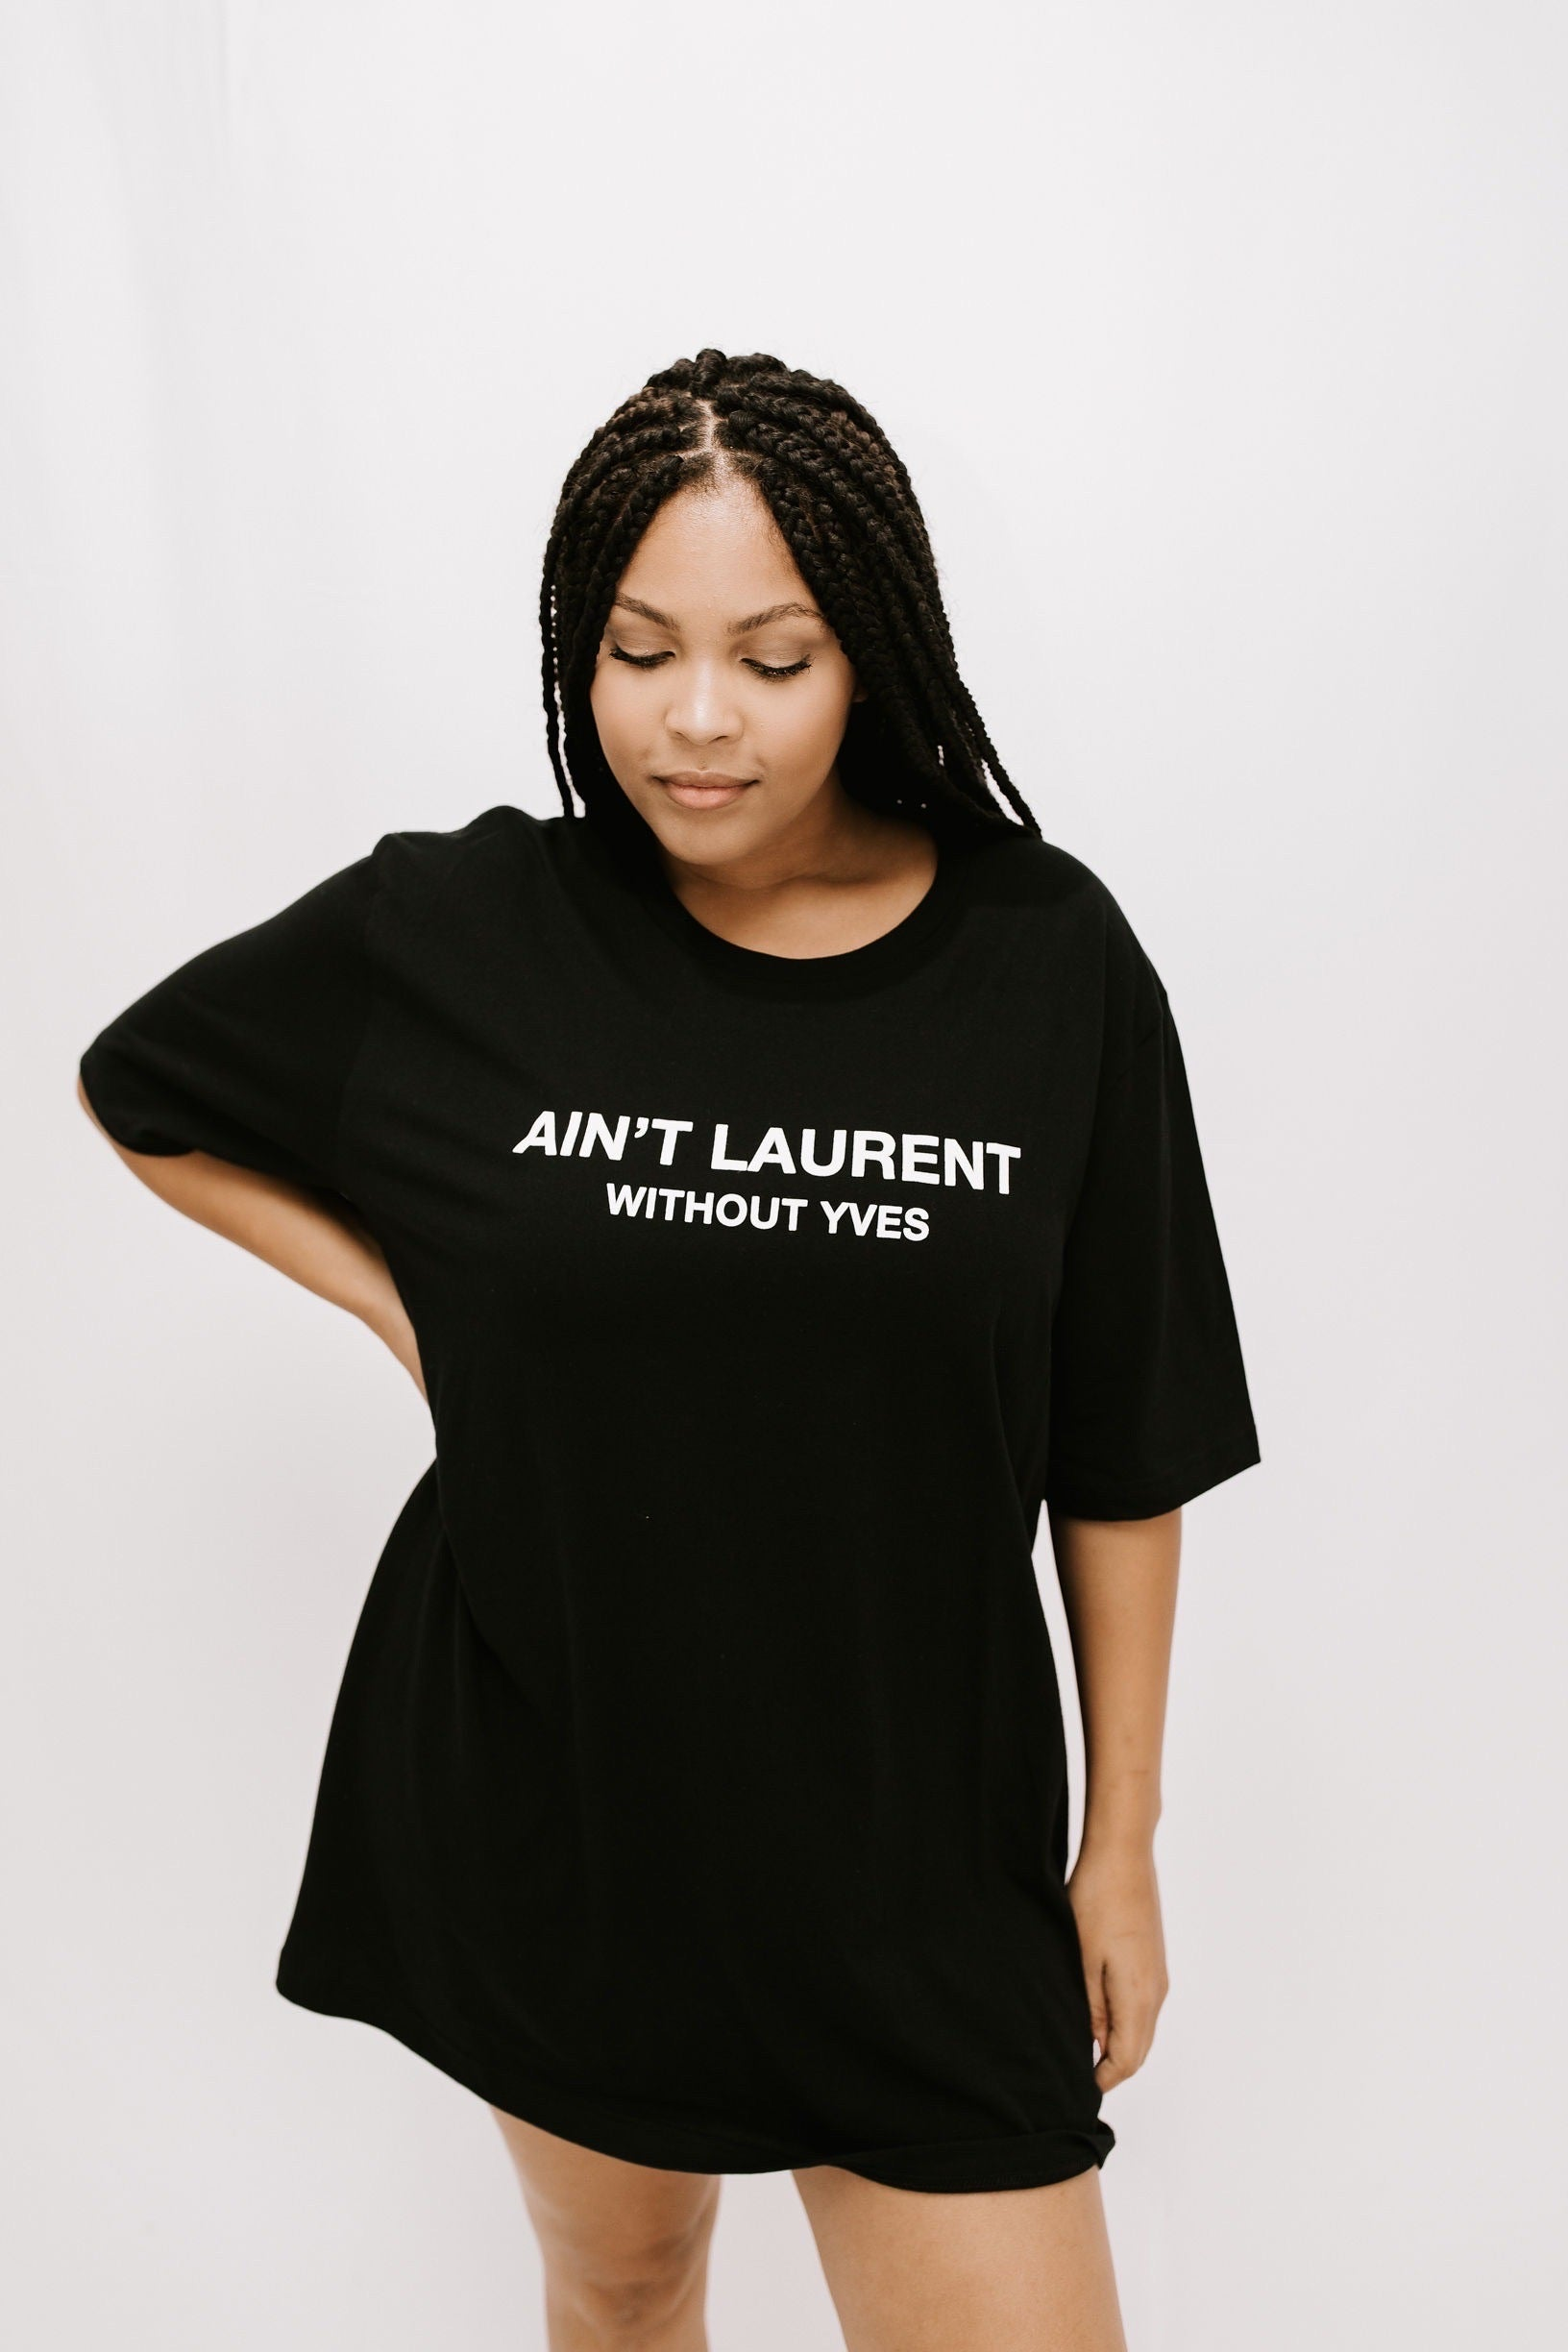 'AIN'T LAURENT WITHOUT YVES' Graphic TShirt - Black